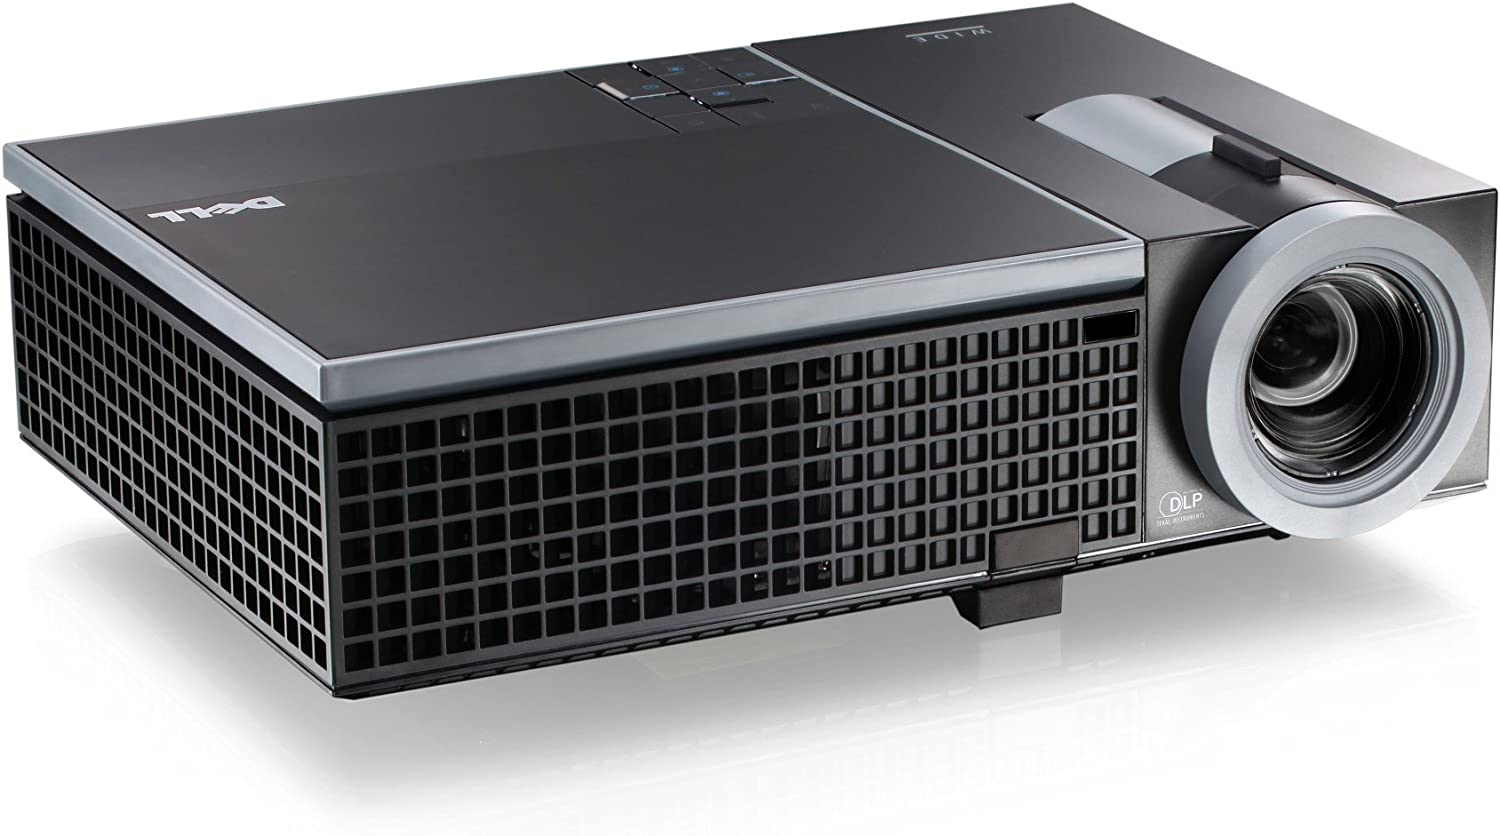 2DJ6988 - Dell 1610HD 3D Ready DLP Projector - 720p - HDTV - 16:10